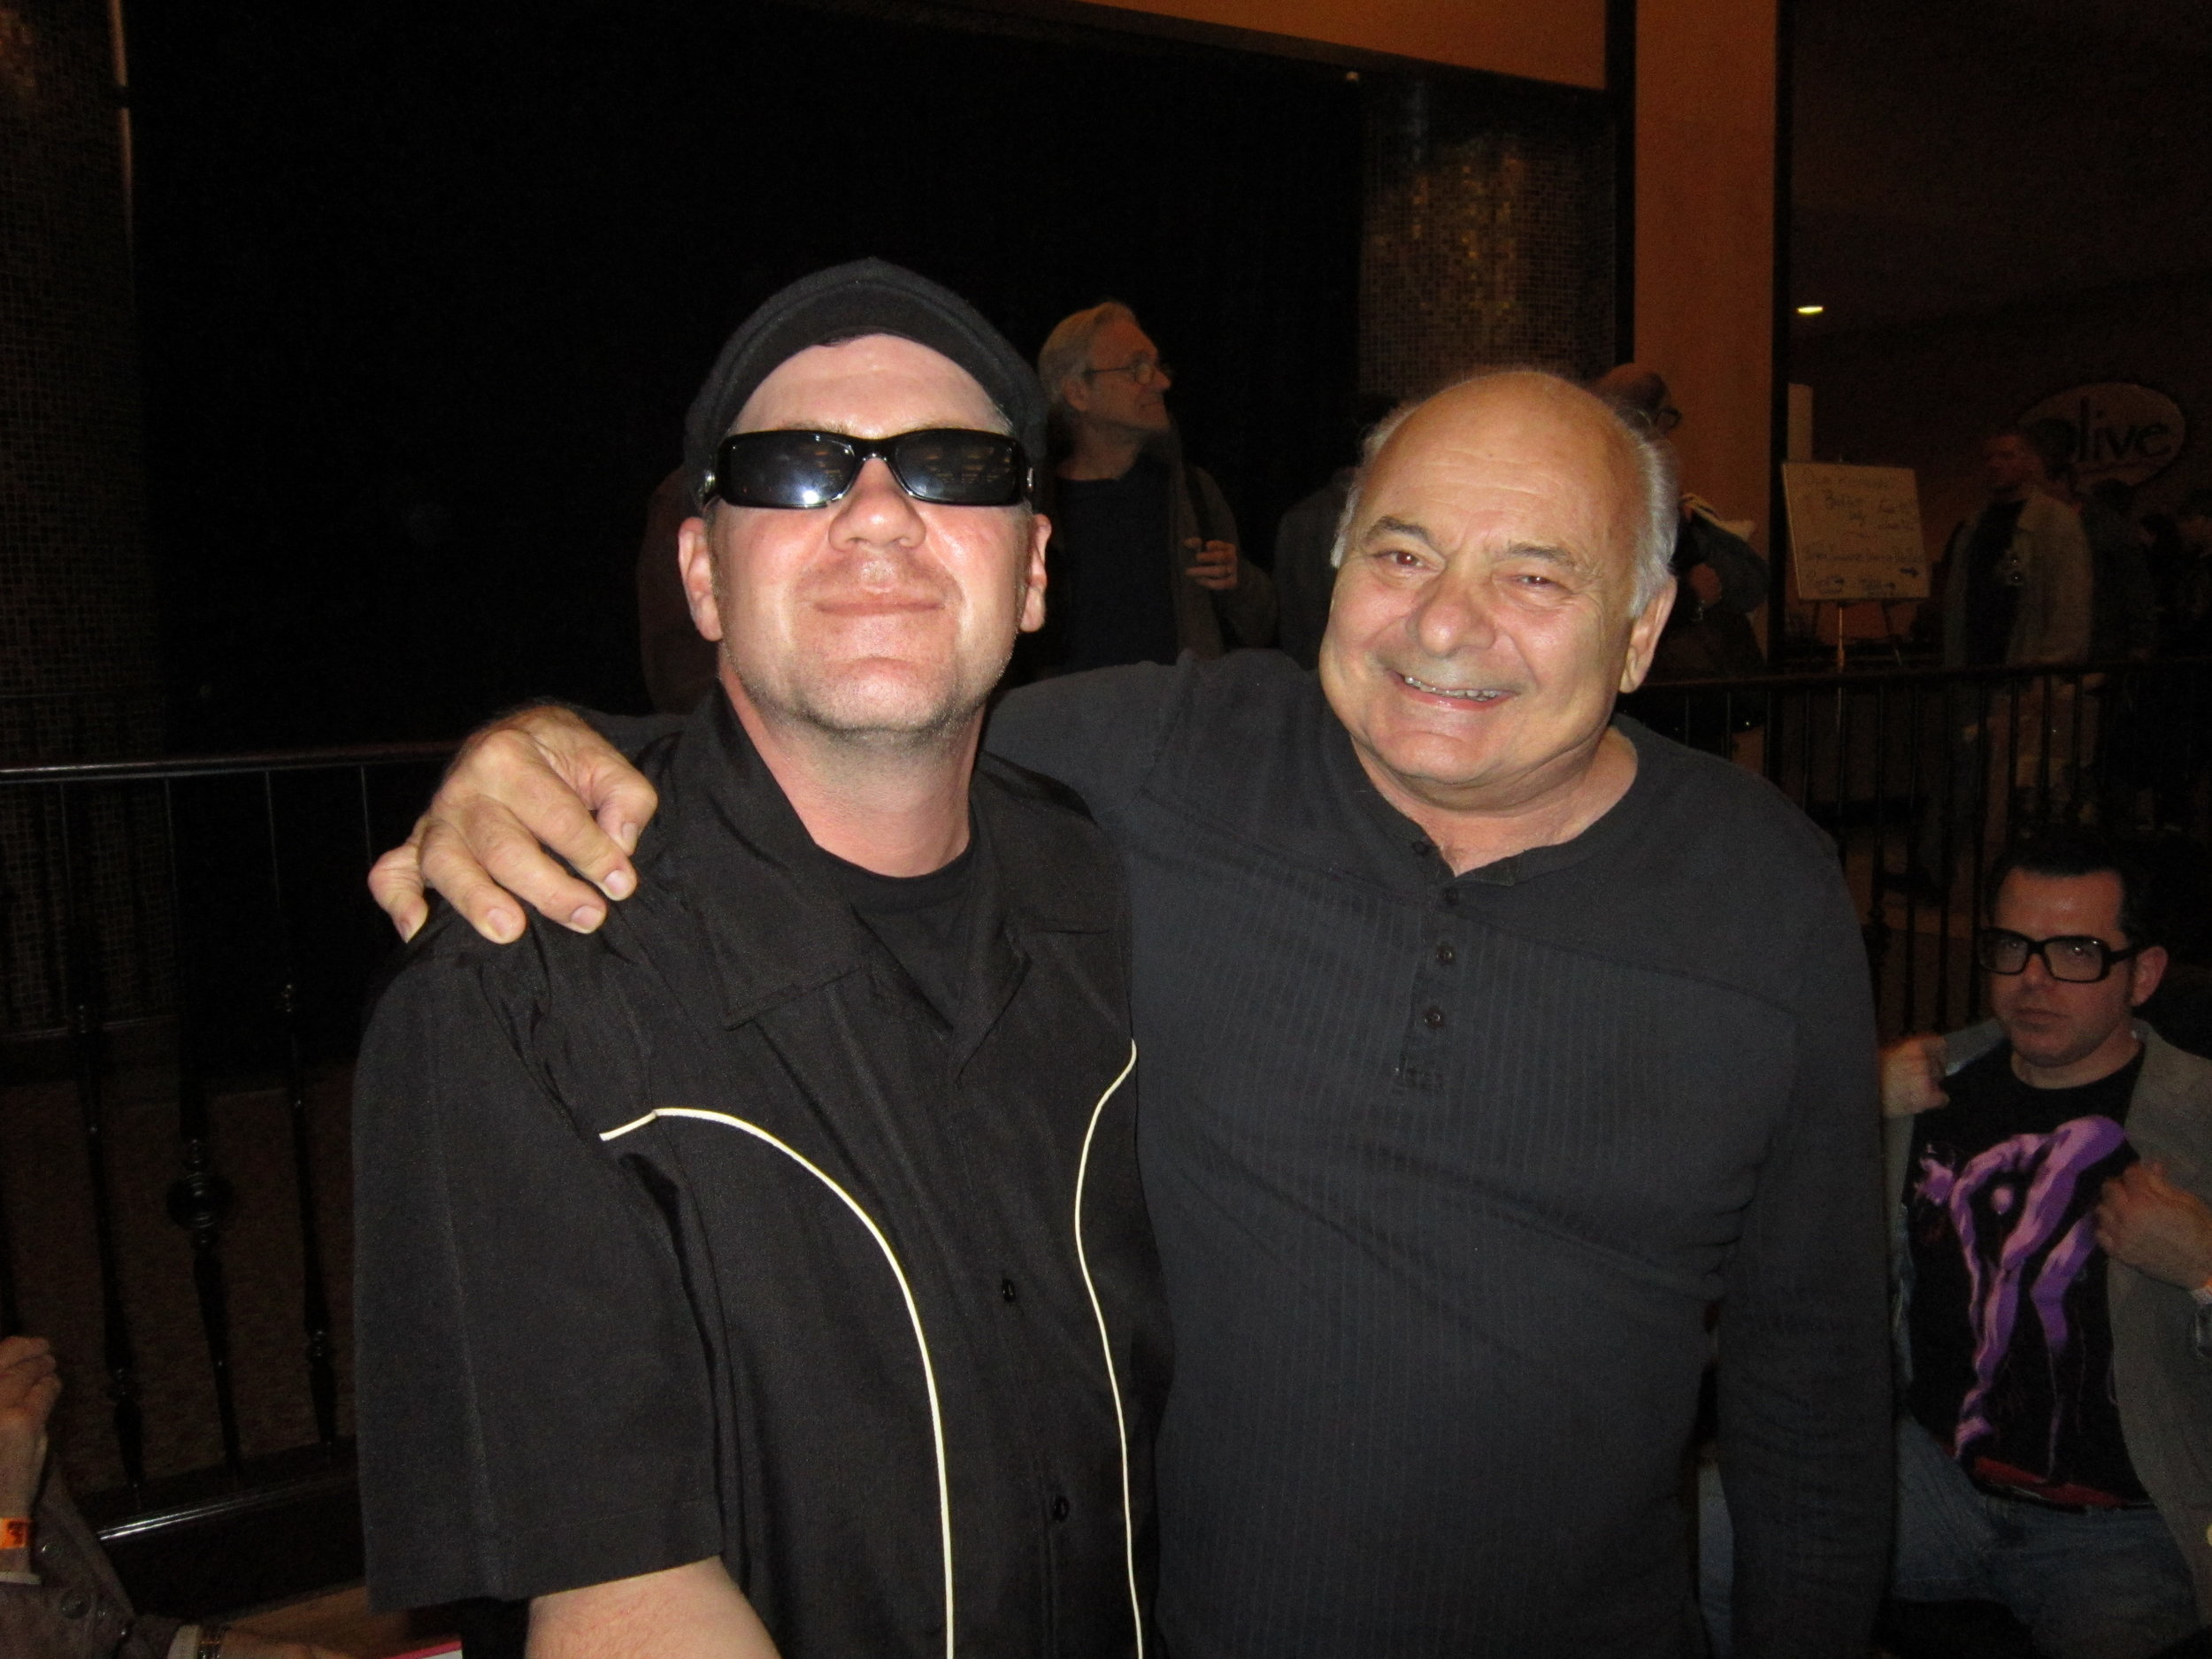 South Boston Jeff with Burt Young from Rocky